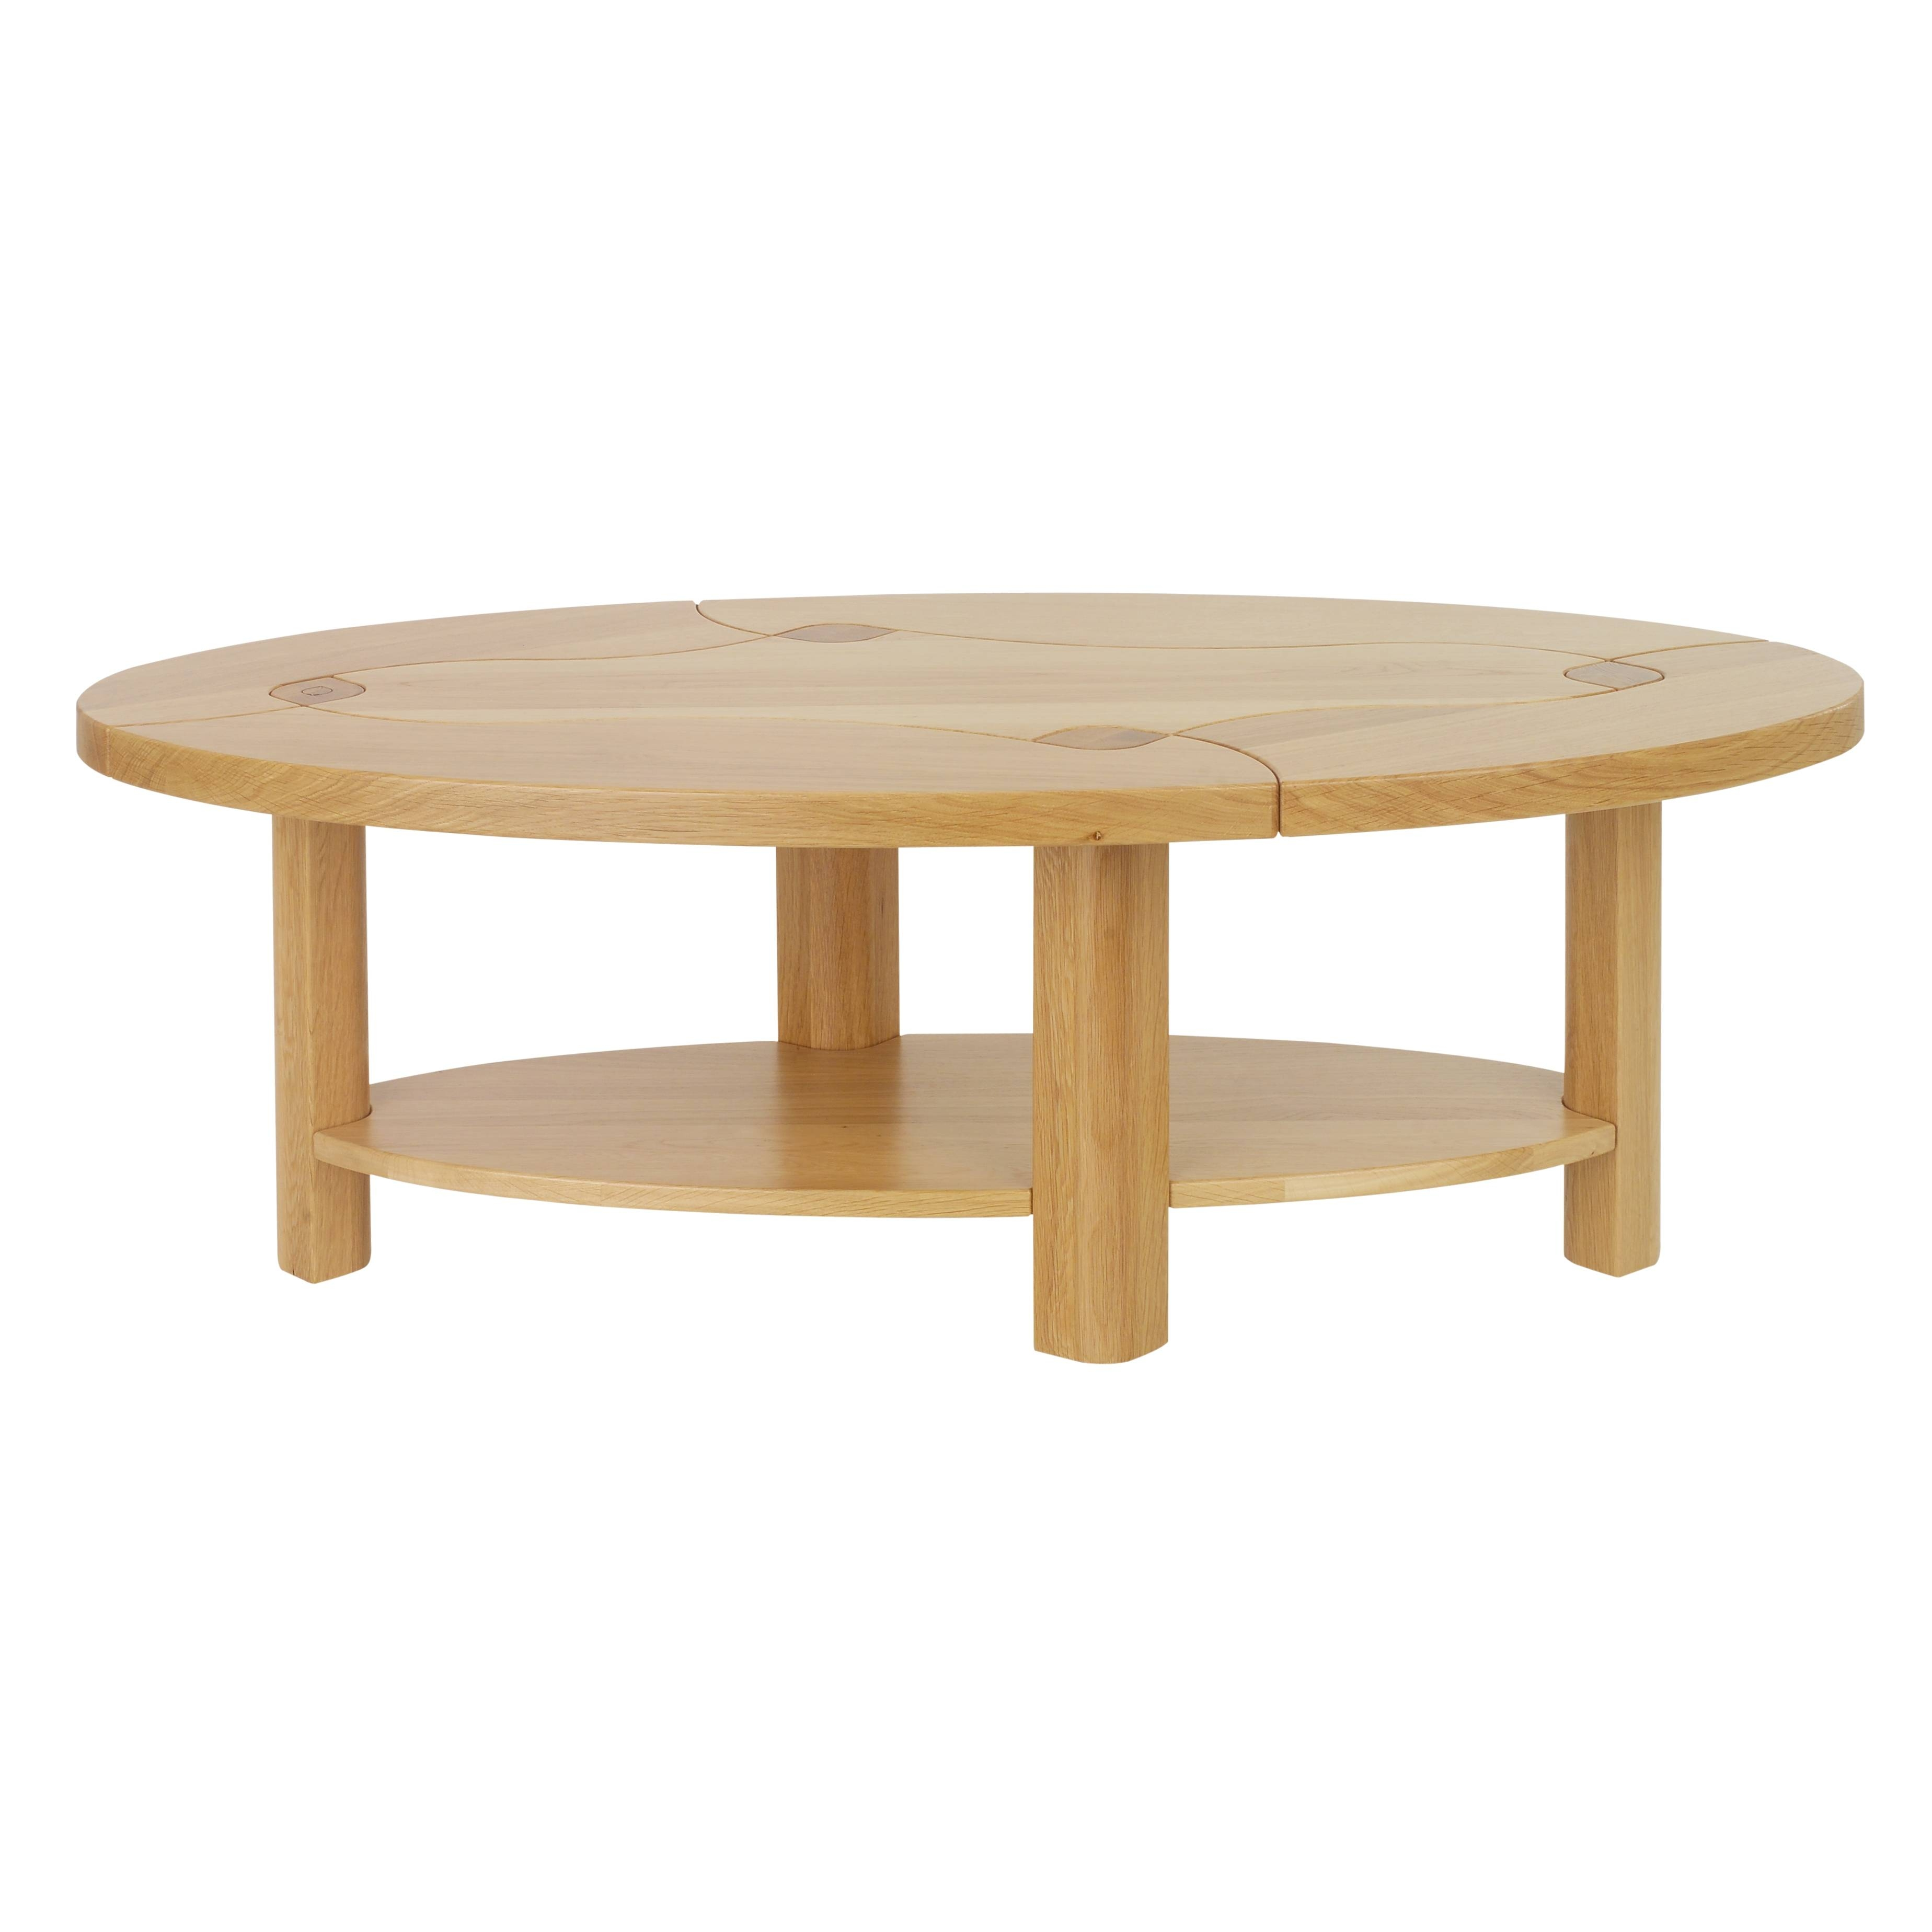 Furniture: Creative Minimalist Small Oval Coffee Table For Living Regarding Small Wood Coffee Tables (View 19 of 30)